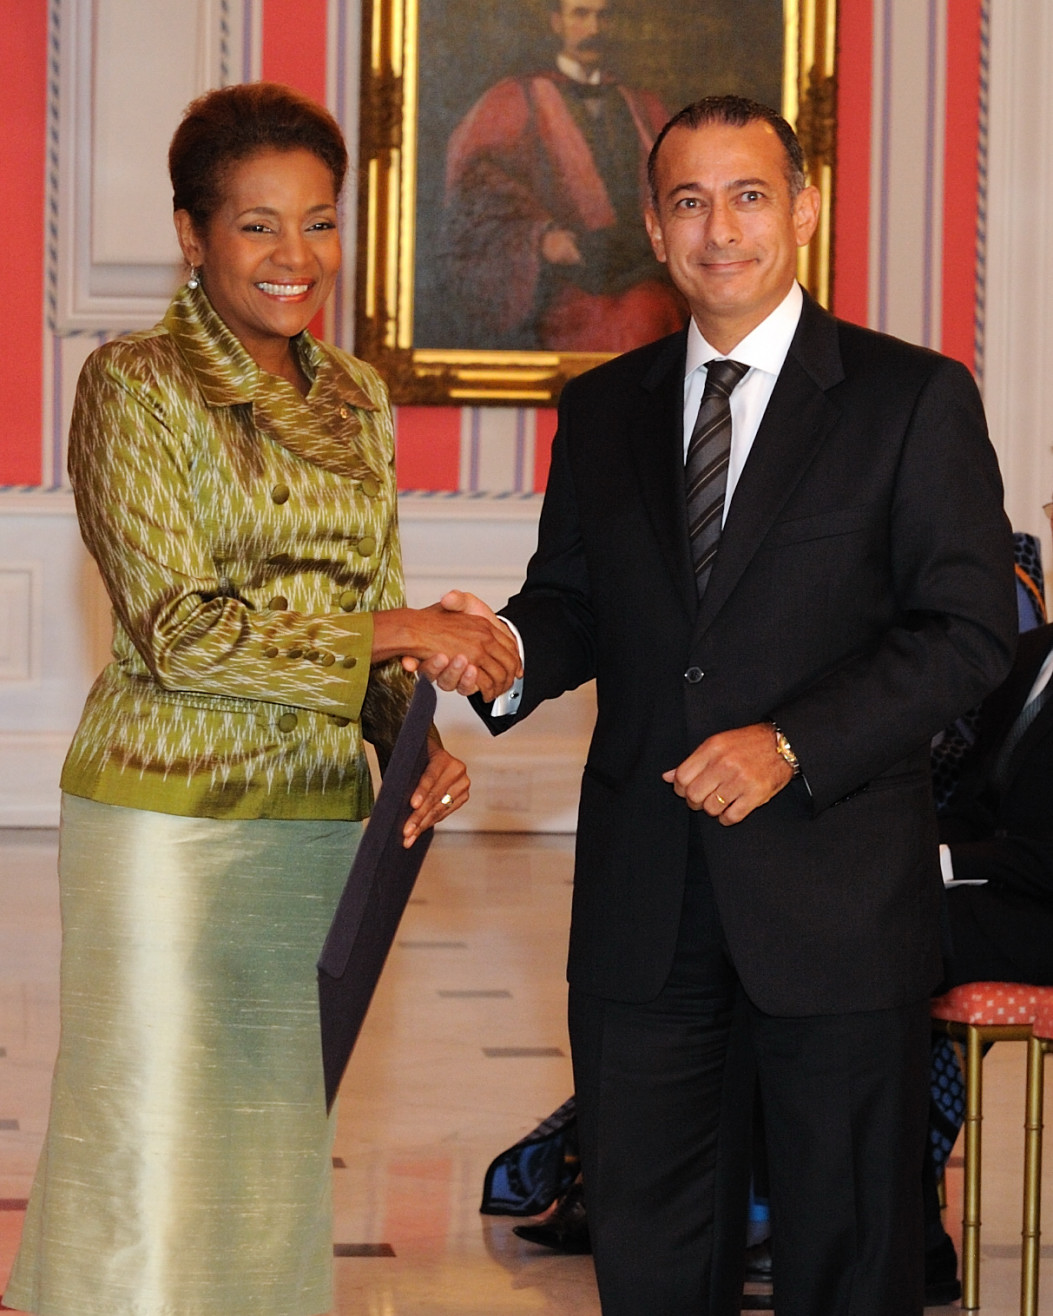 Her Excellency the Right Honourable Michaëlle Jean, Governor General of Canada, received the credentials of His Excellency Wael Ahmed Kamal Aboul Magd, Ambassador-designate of the Arab Republic of Egypt.